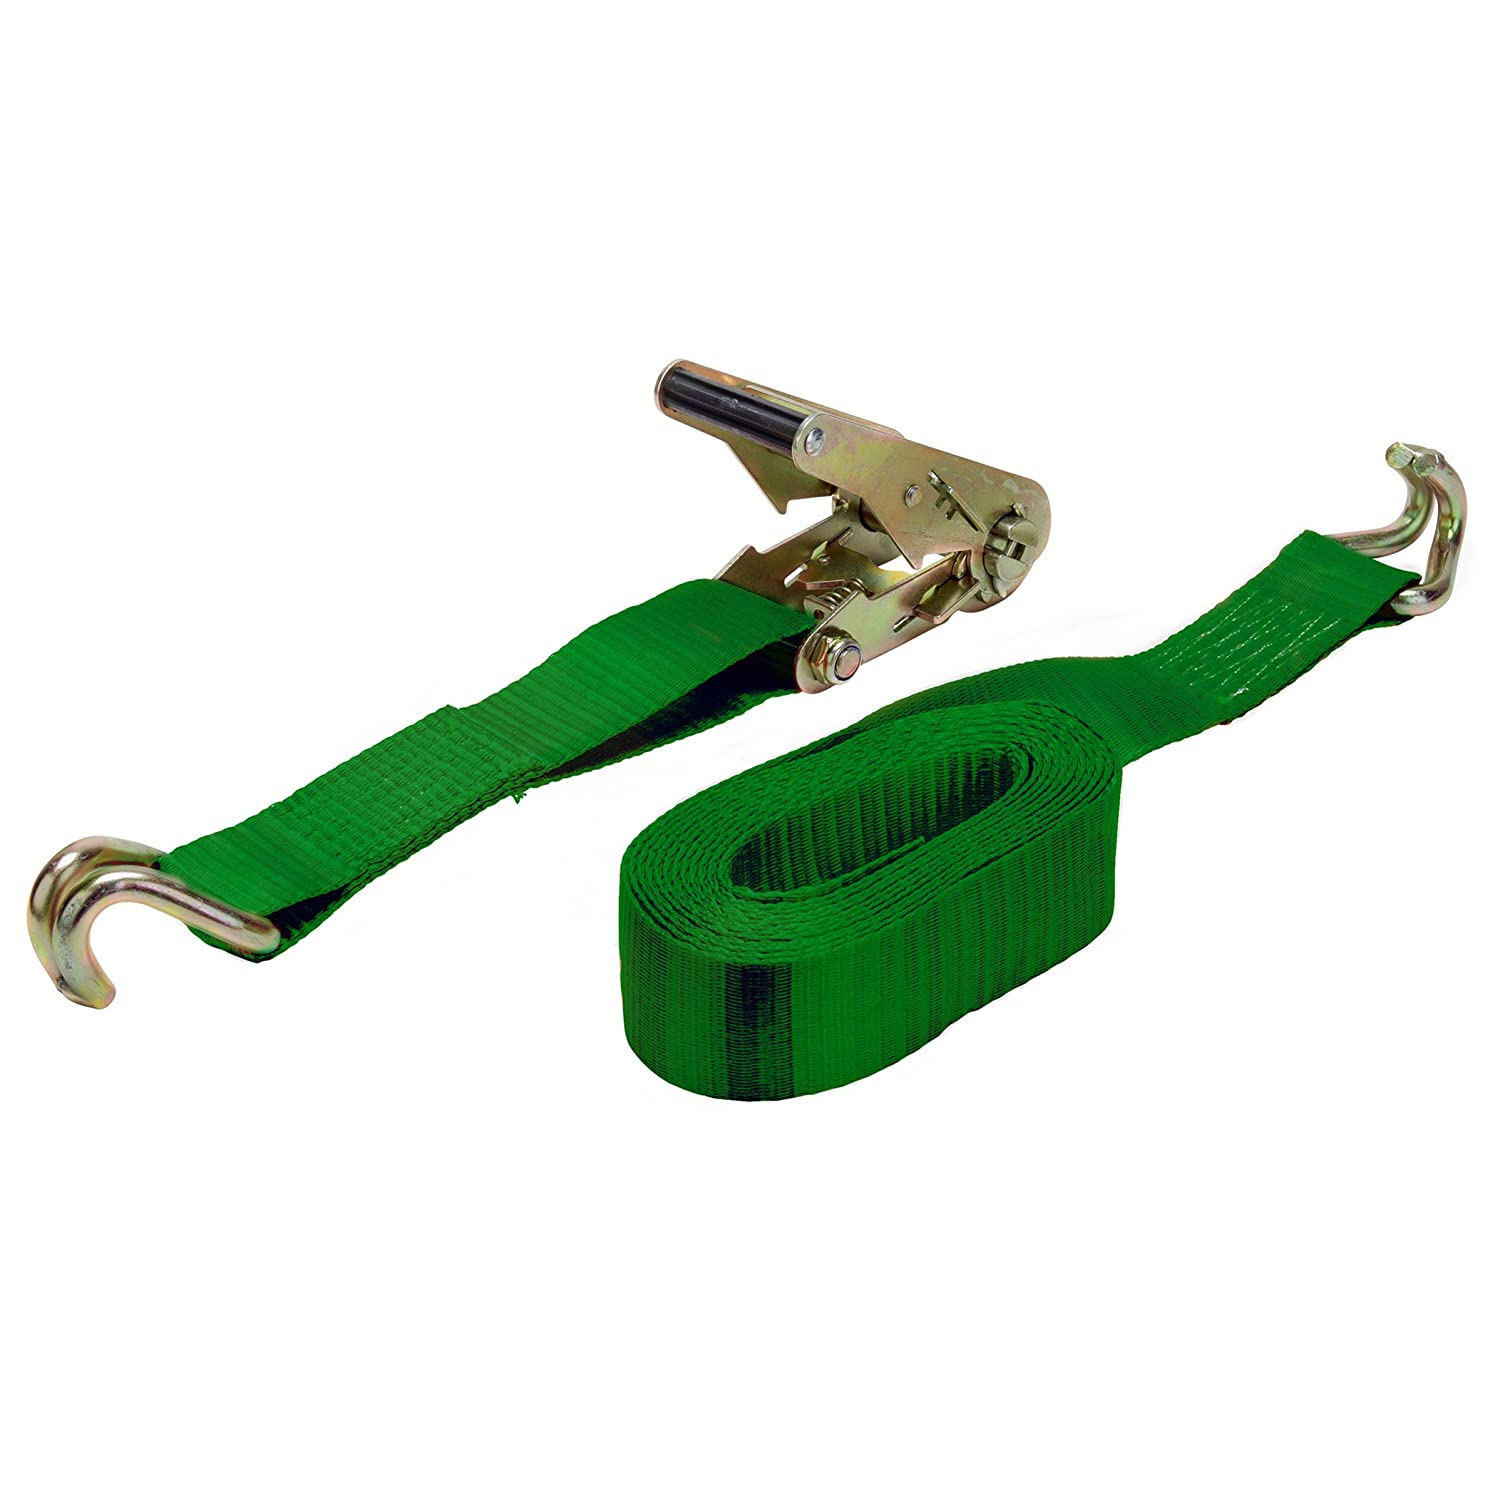 4 Pack Keeper 04618 16 x 2 Ratchet Tie-Down with J-Hooks